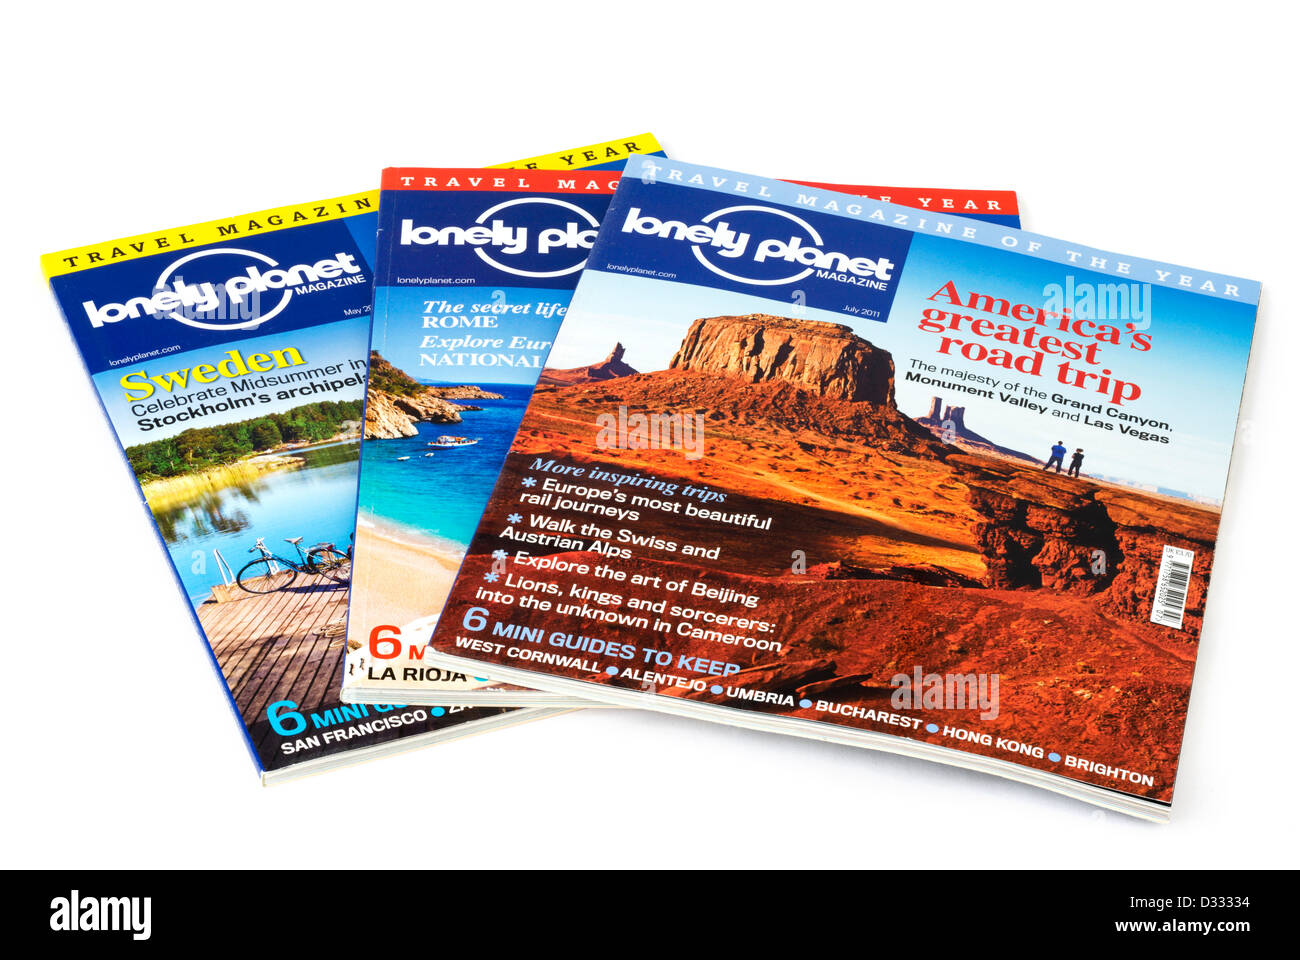 Lonely Planet-Reisemagazine Stockbild